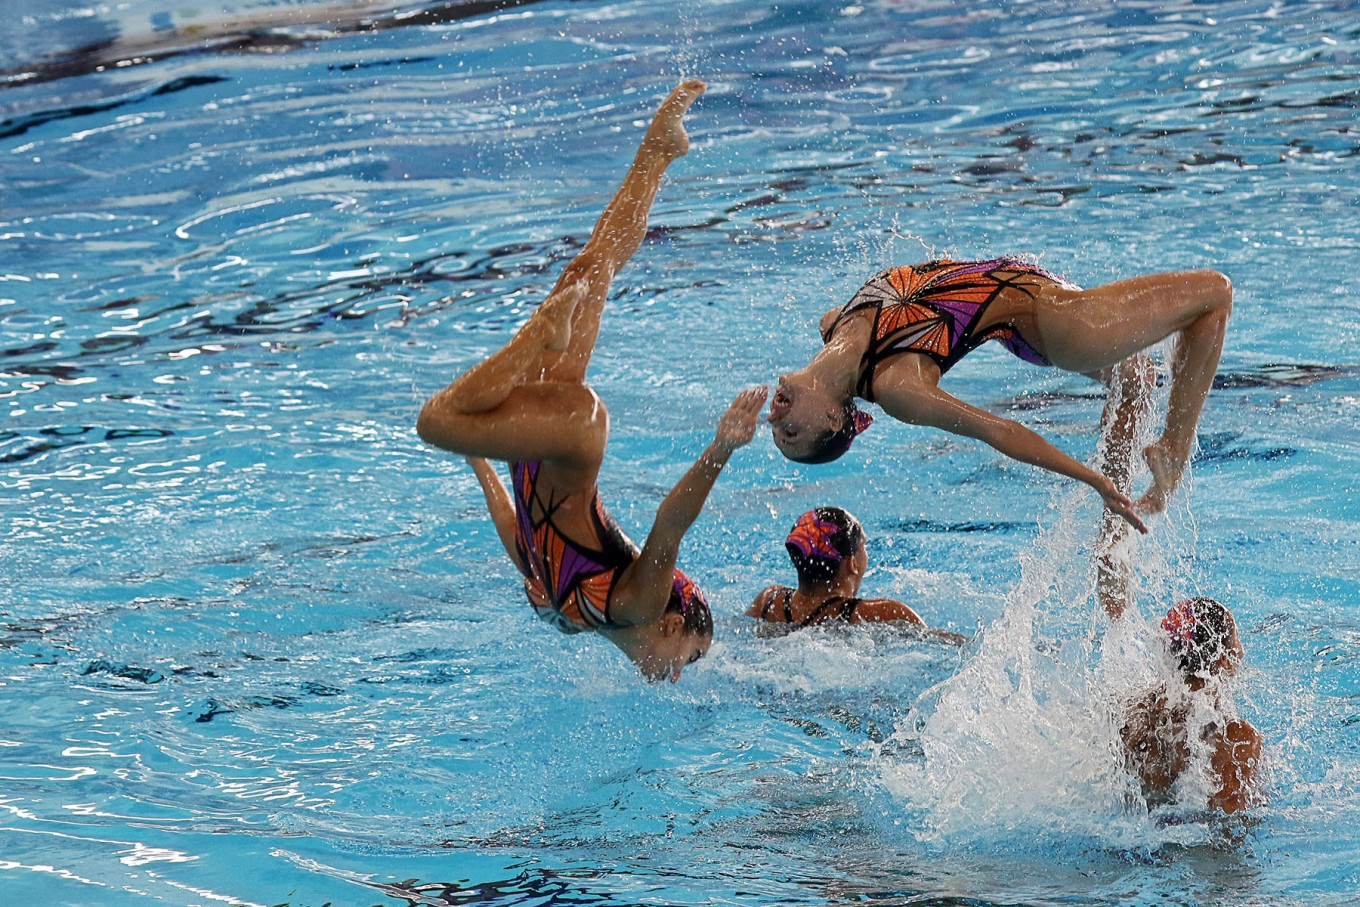 The Singapore team competes in the women's artistic swimming team's technical routine. JP/Seto Wardhana.